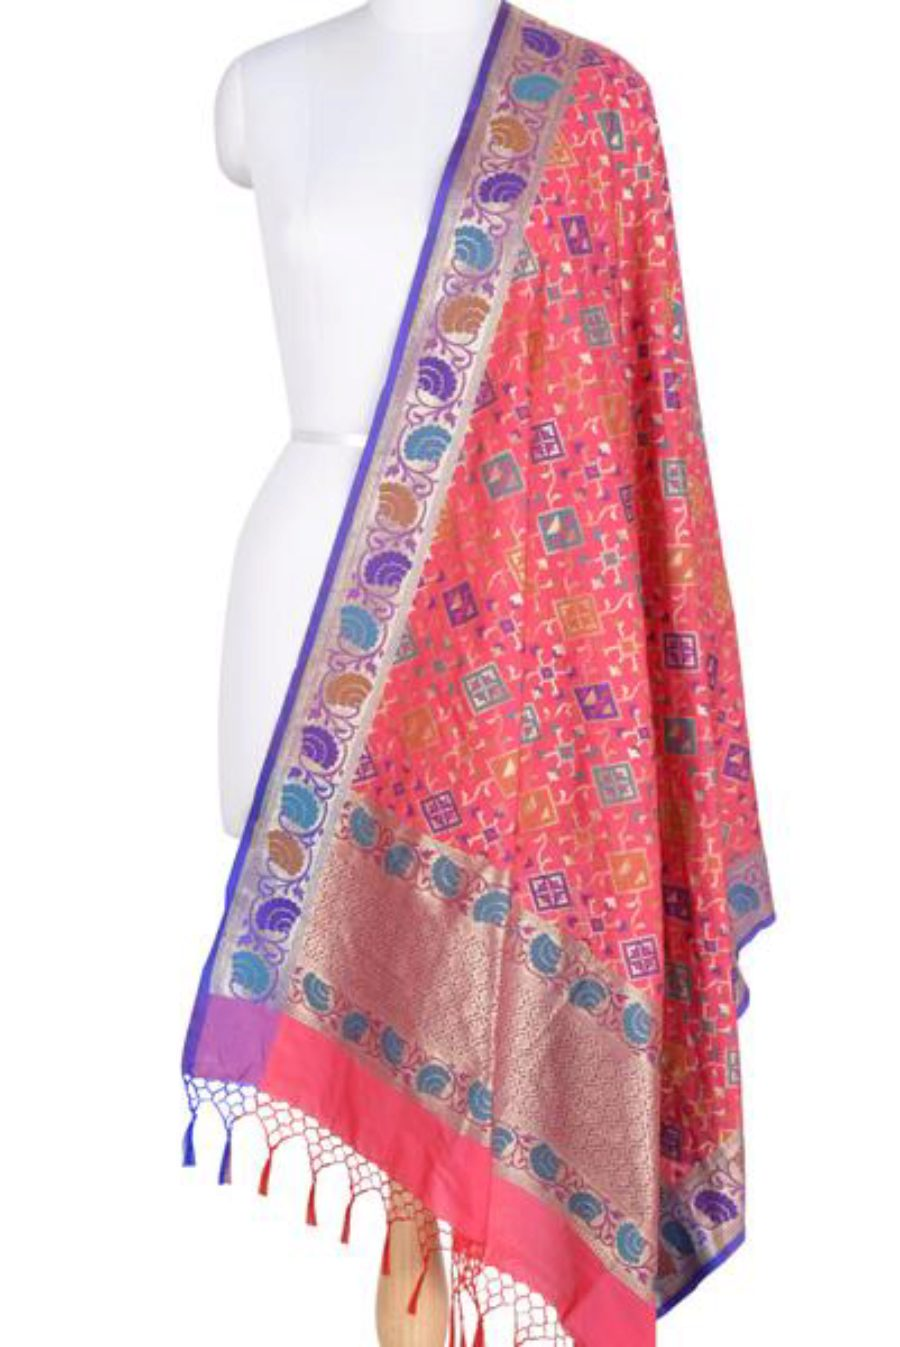 Strawberry Pink Banarasi Dupatta with Rajkoti pattern and paithani border (1) Main